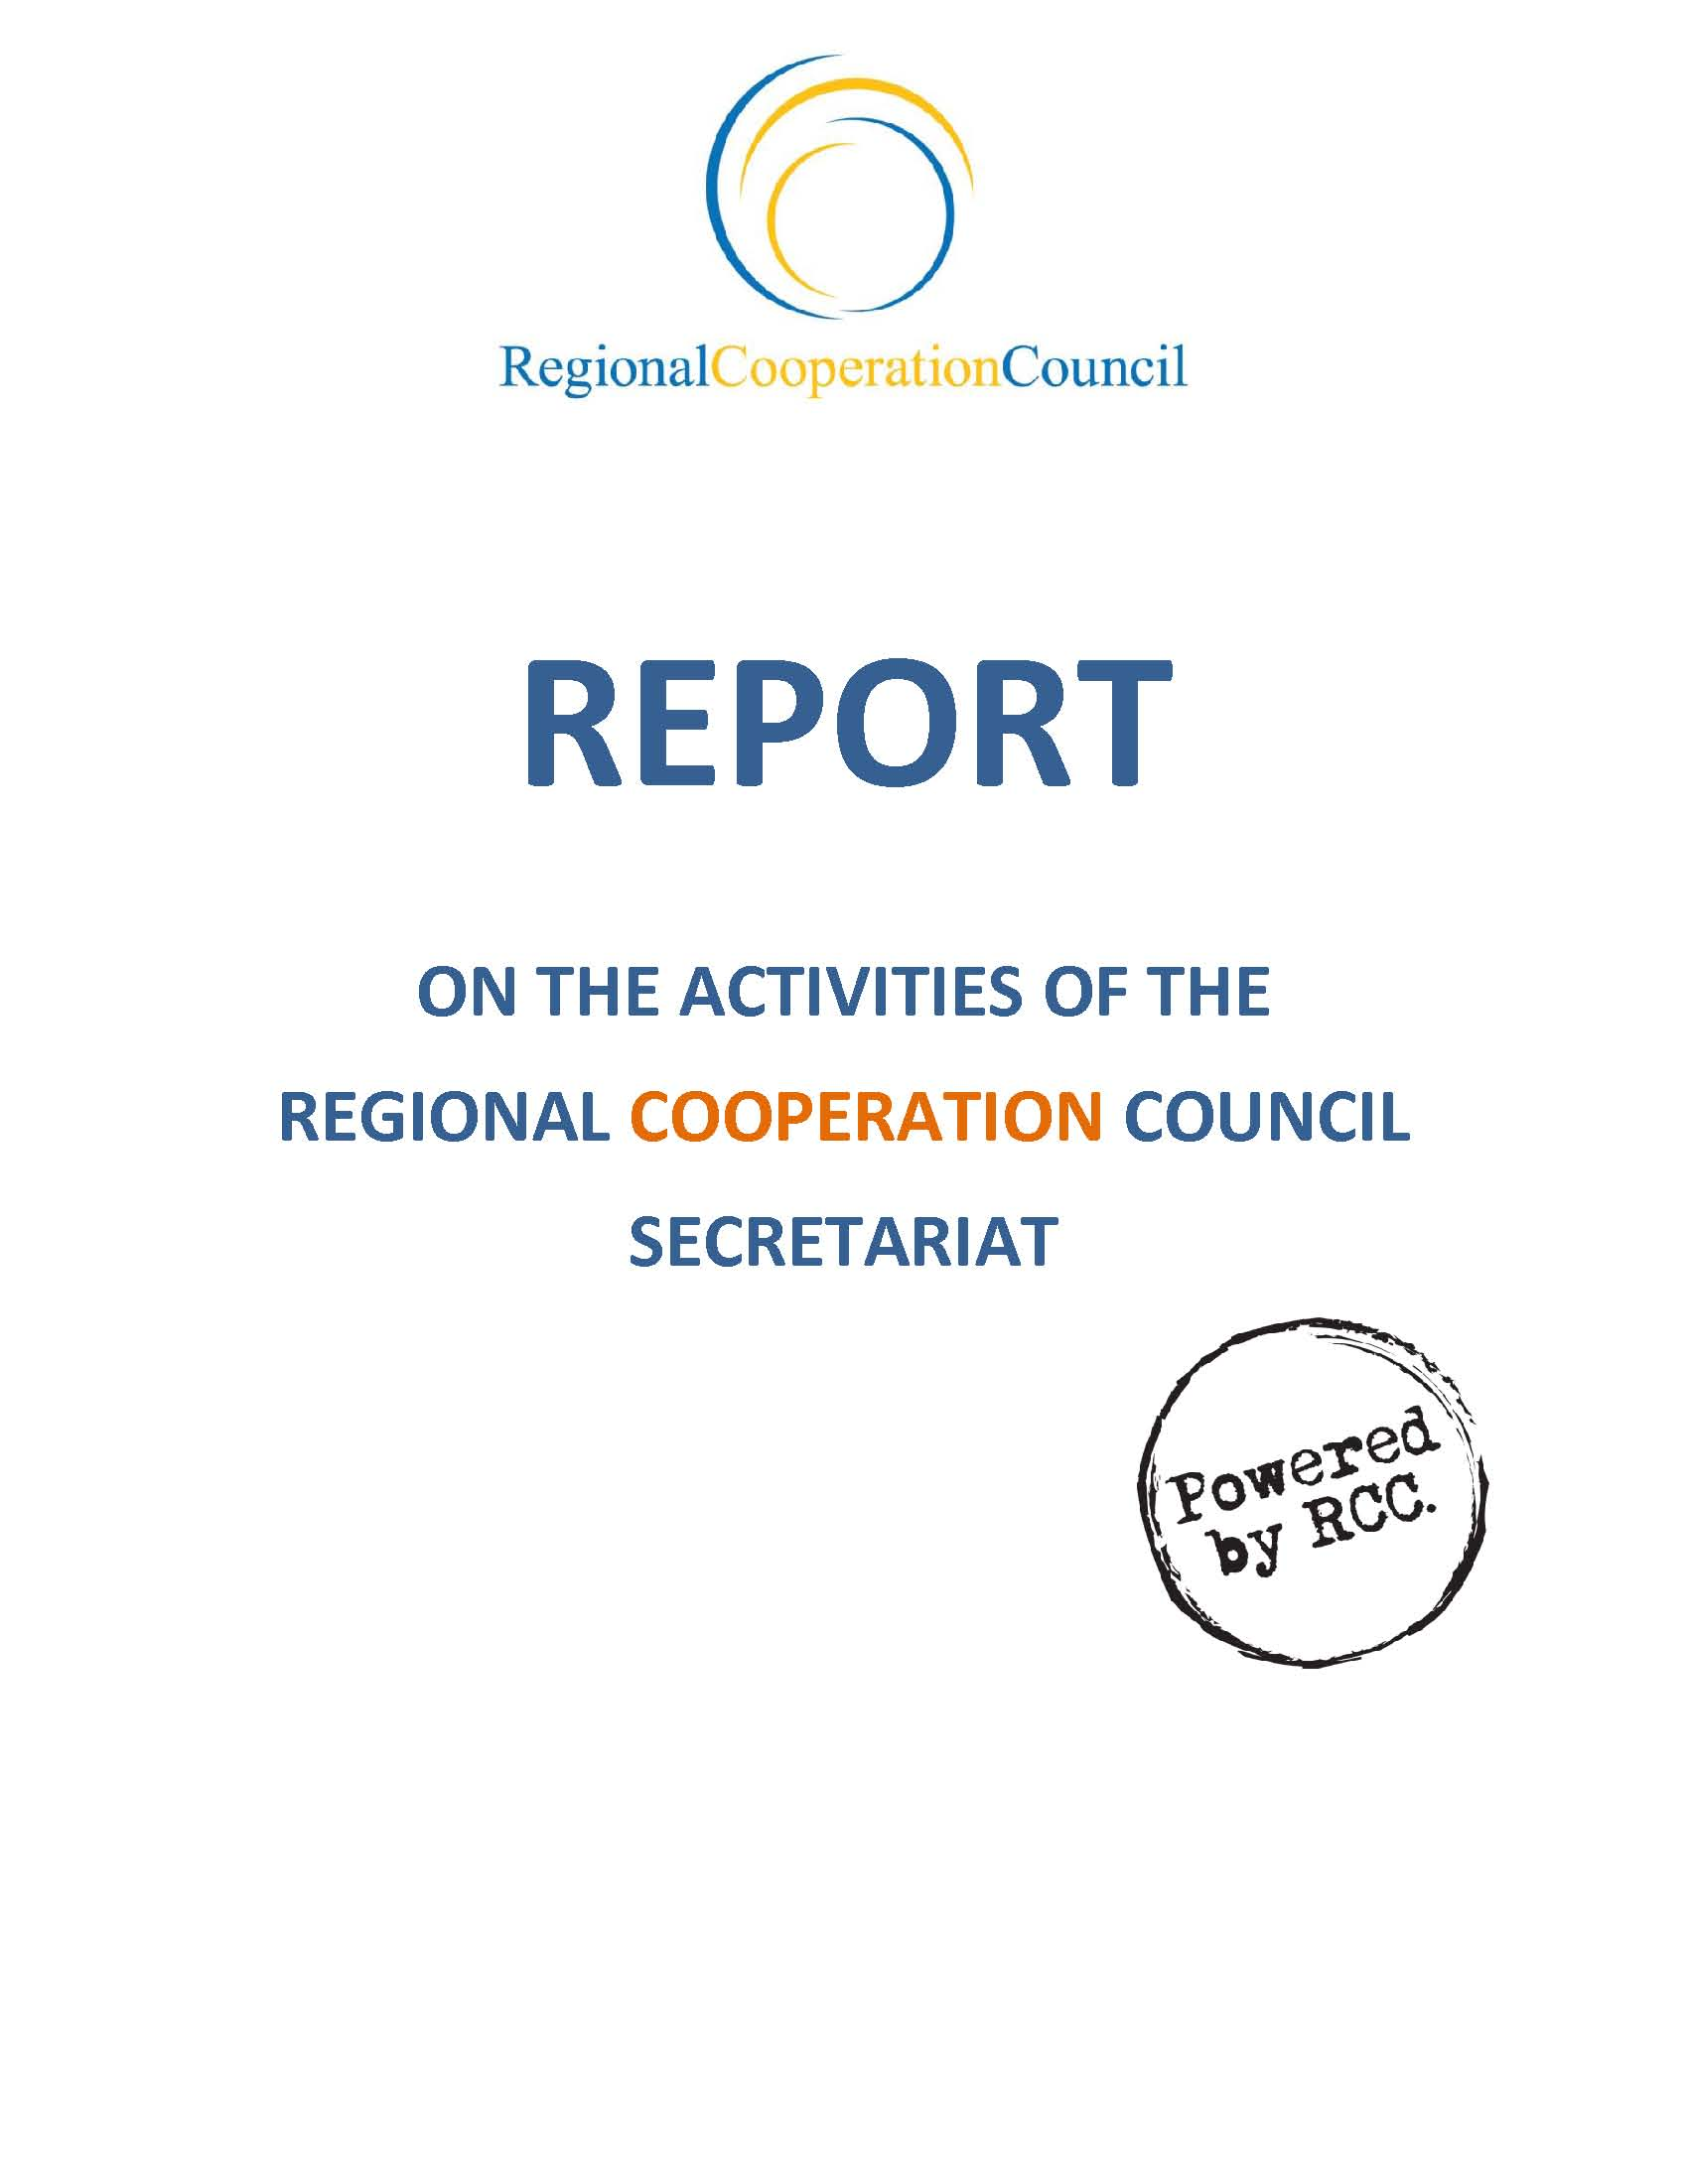 REPORT ON THE ACTIVITIES OF THE REGIONAL COOPERATION COUNCIL SECRETARIAT FOR THE PERIOD 1 April – 31 August 2017